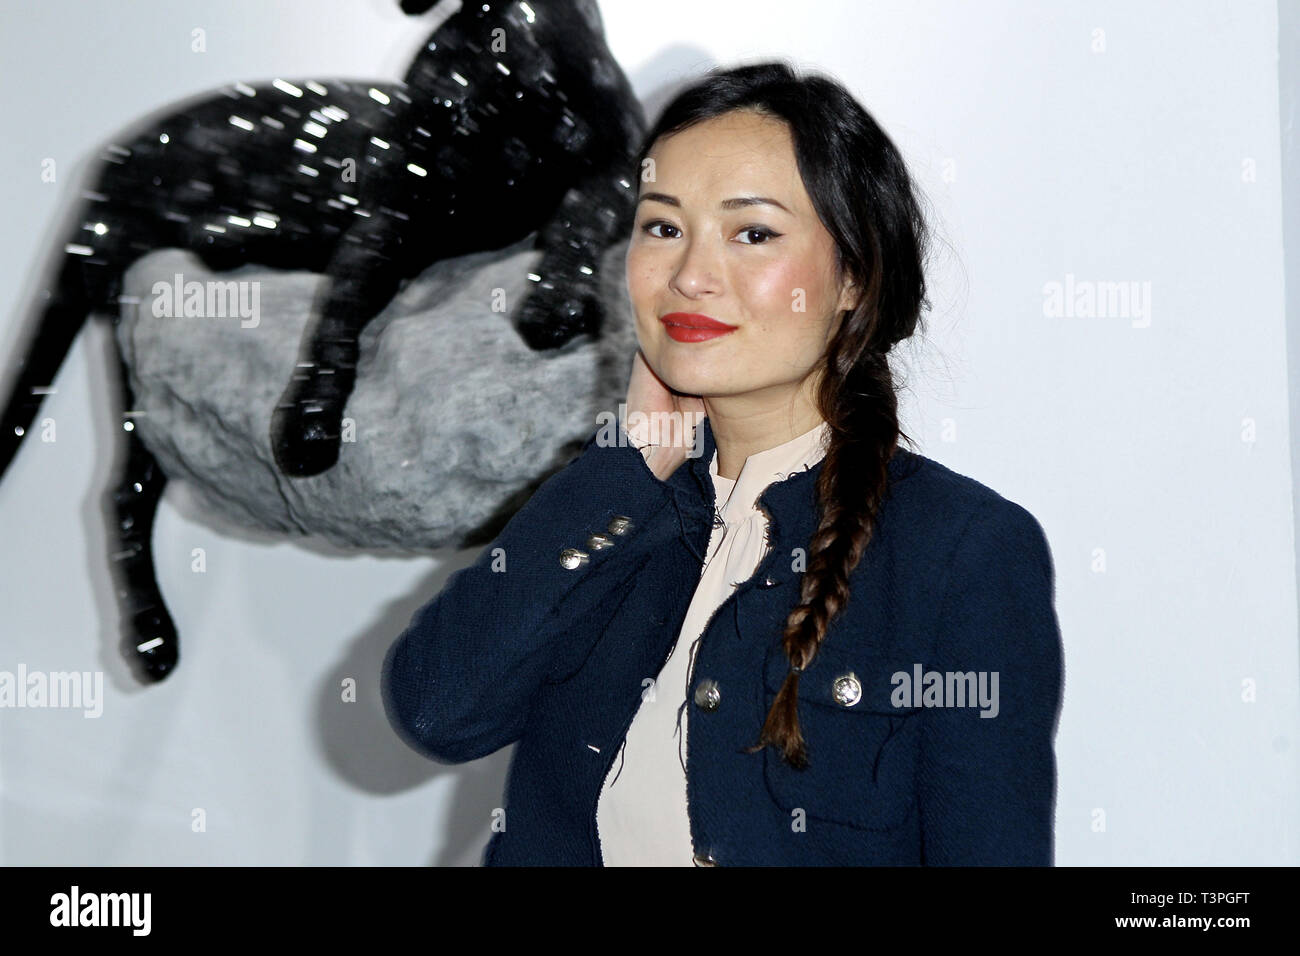 New York, USA. 21 May, 2015.  Kamilla Sun at The Opening Night Of 'Paul Gerben: Mind Game' Private Art Event at Space 16 on May 21, 2015 in New York, NY. Credit: Steve Mack/S.D. Mack Pictures/Alamy - Stock Image